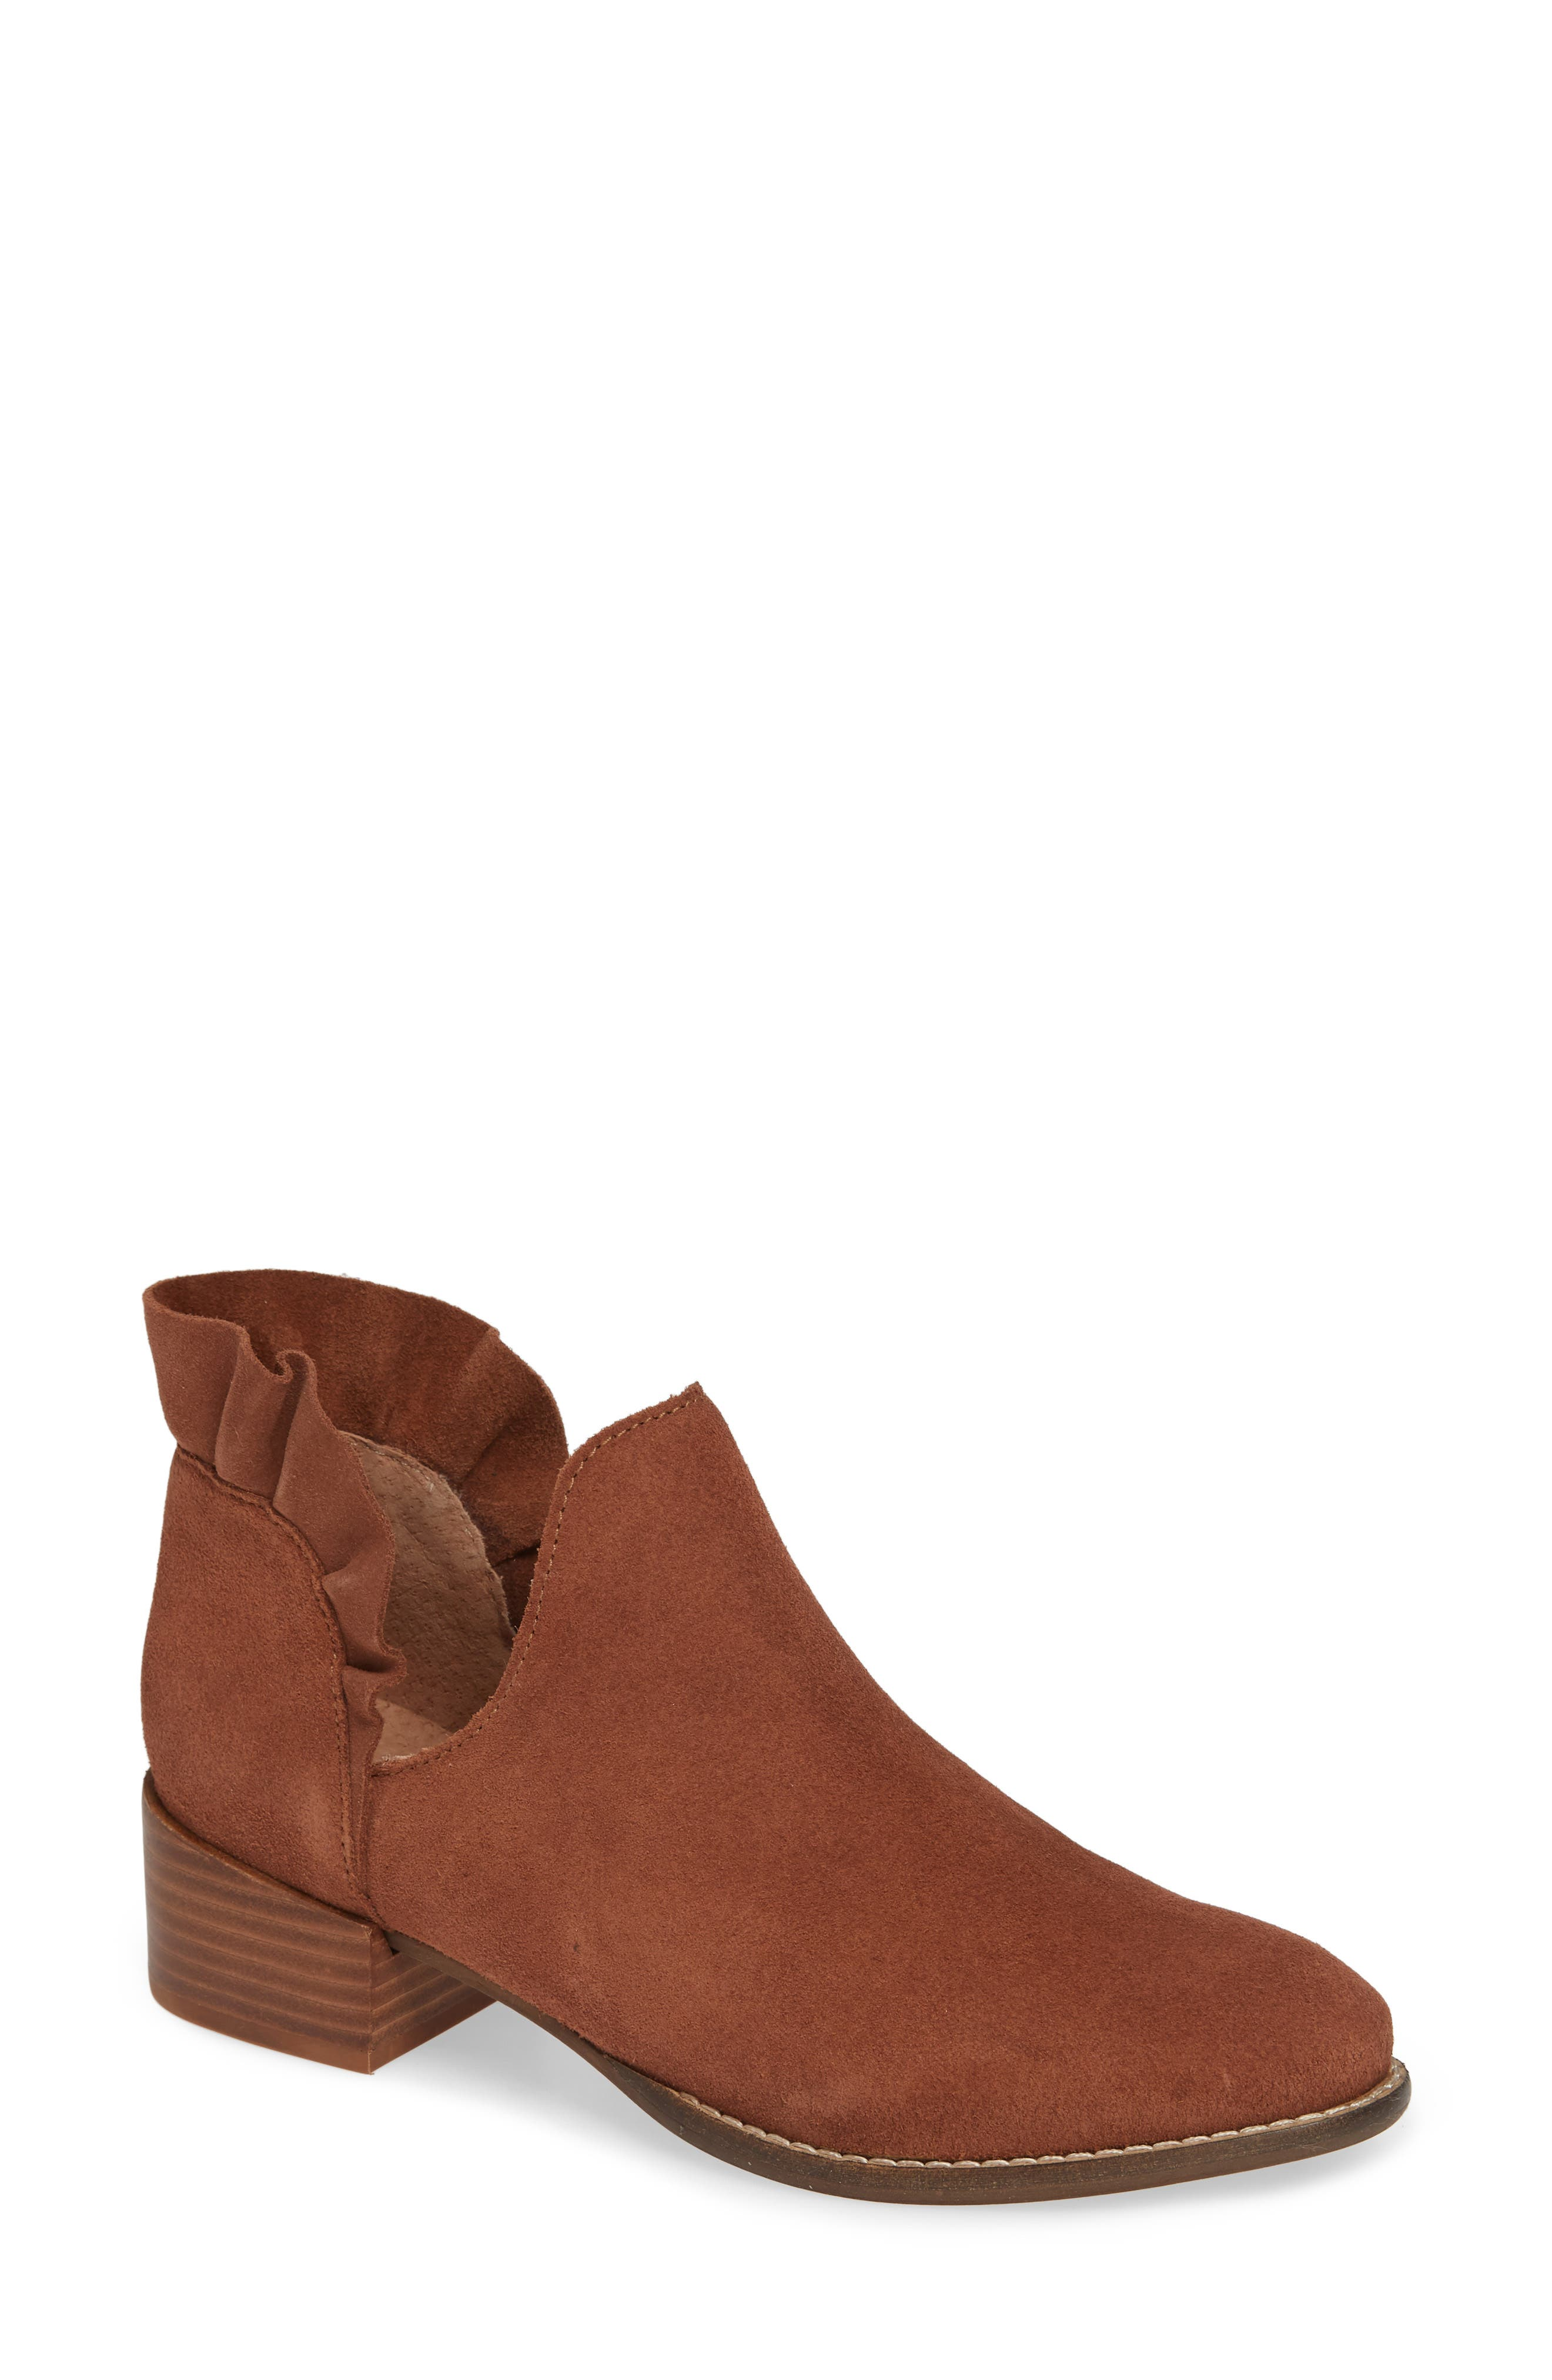 Seychelles Renowned Bootie, Brown